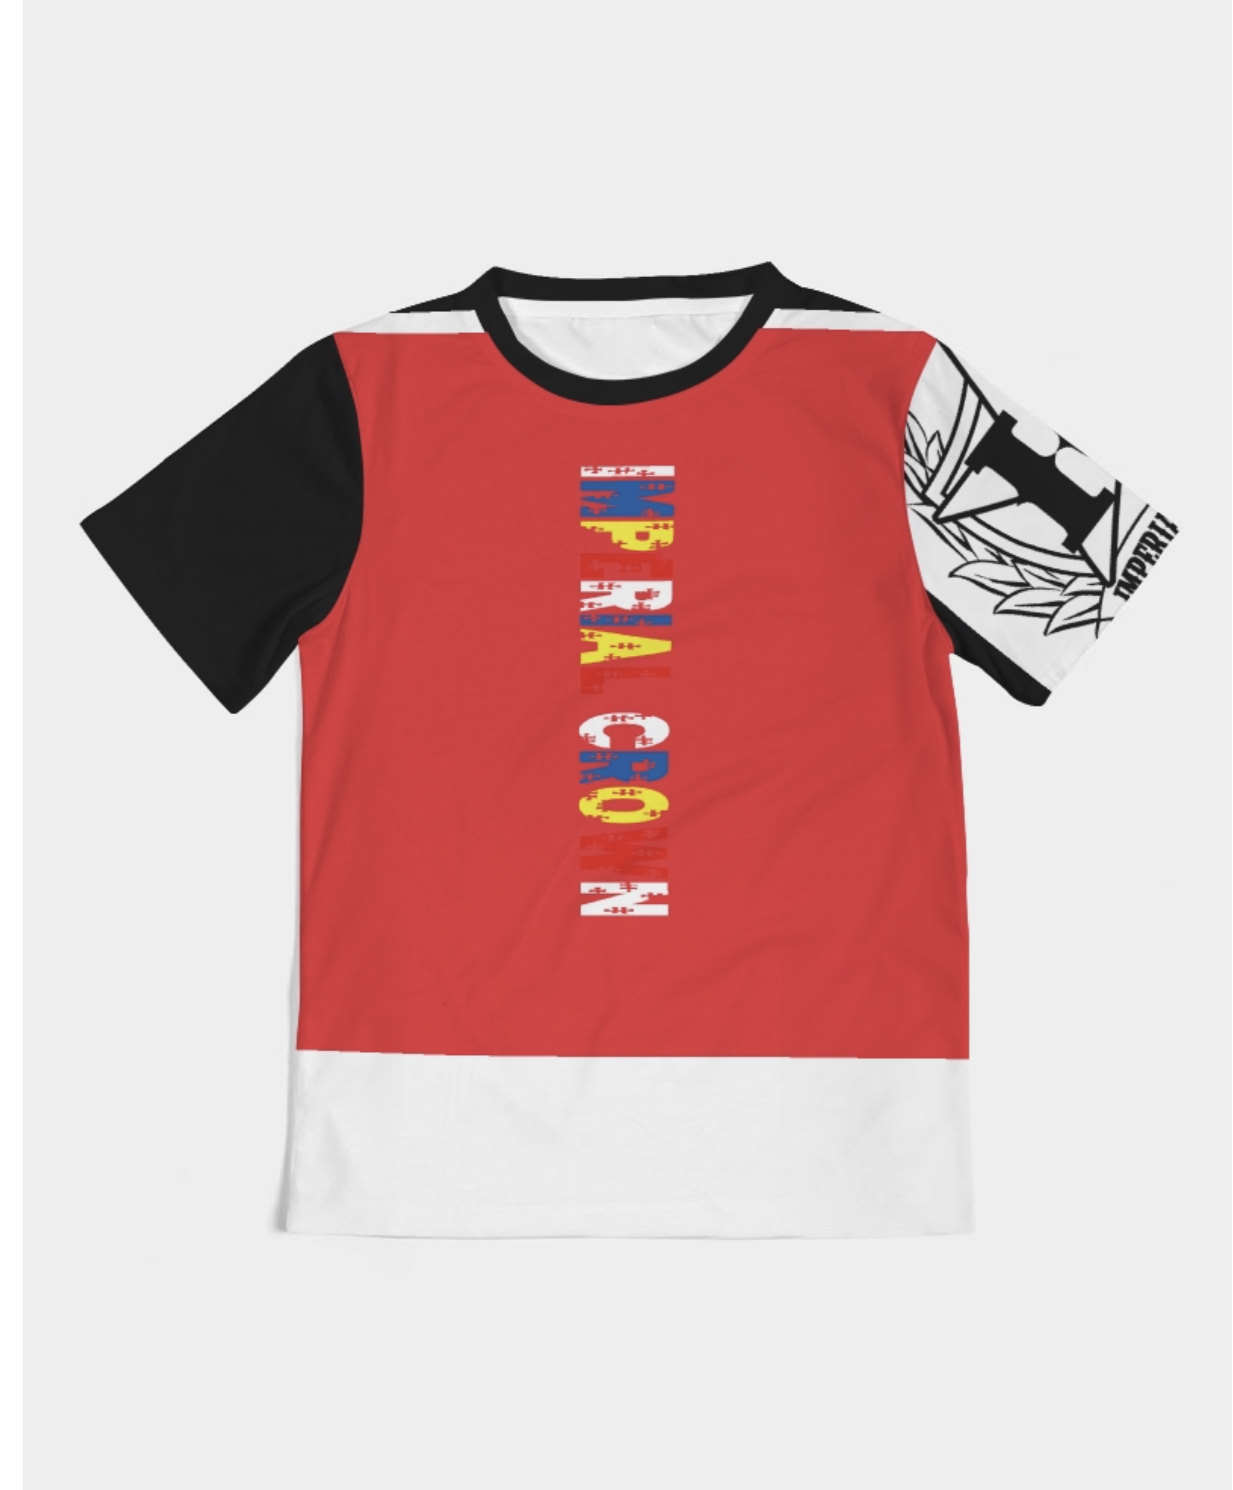 IC kids black,white,red  premium t shirt